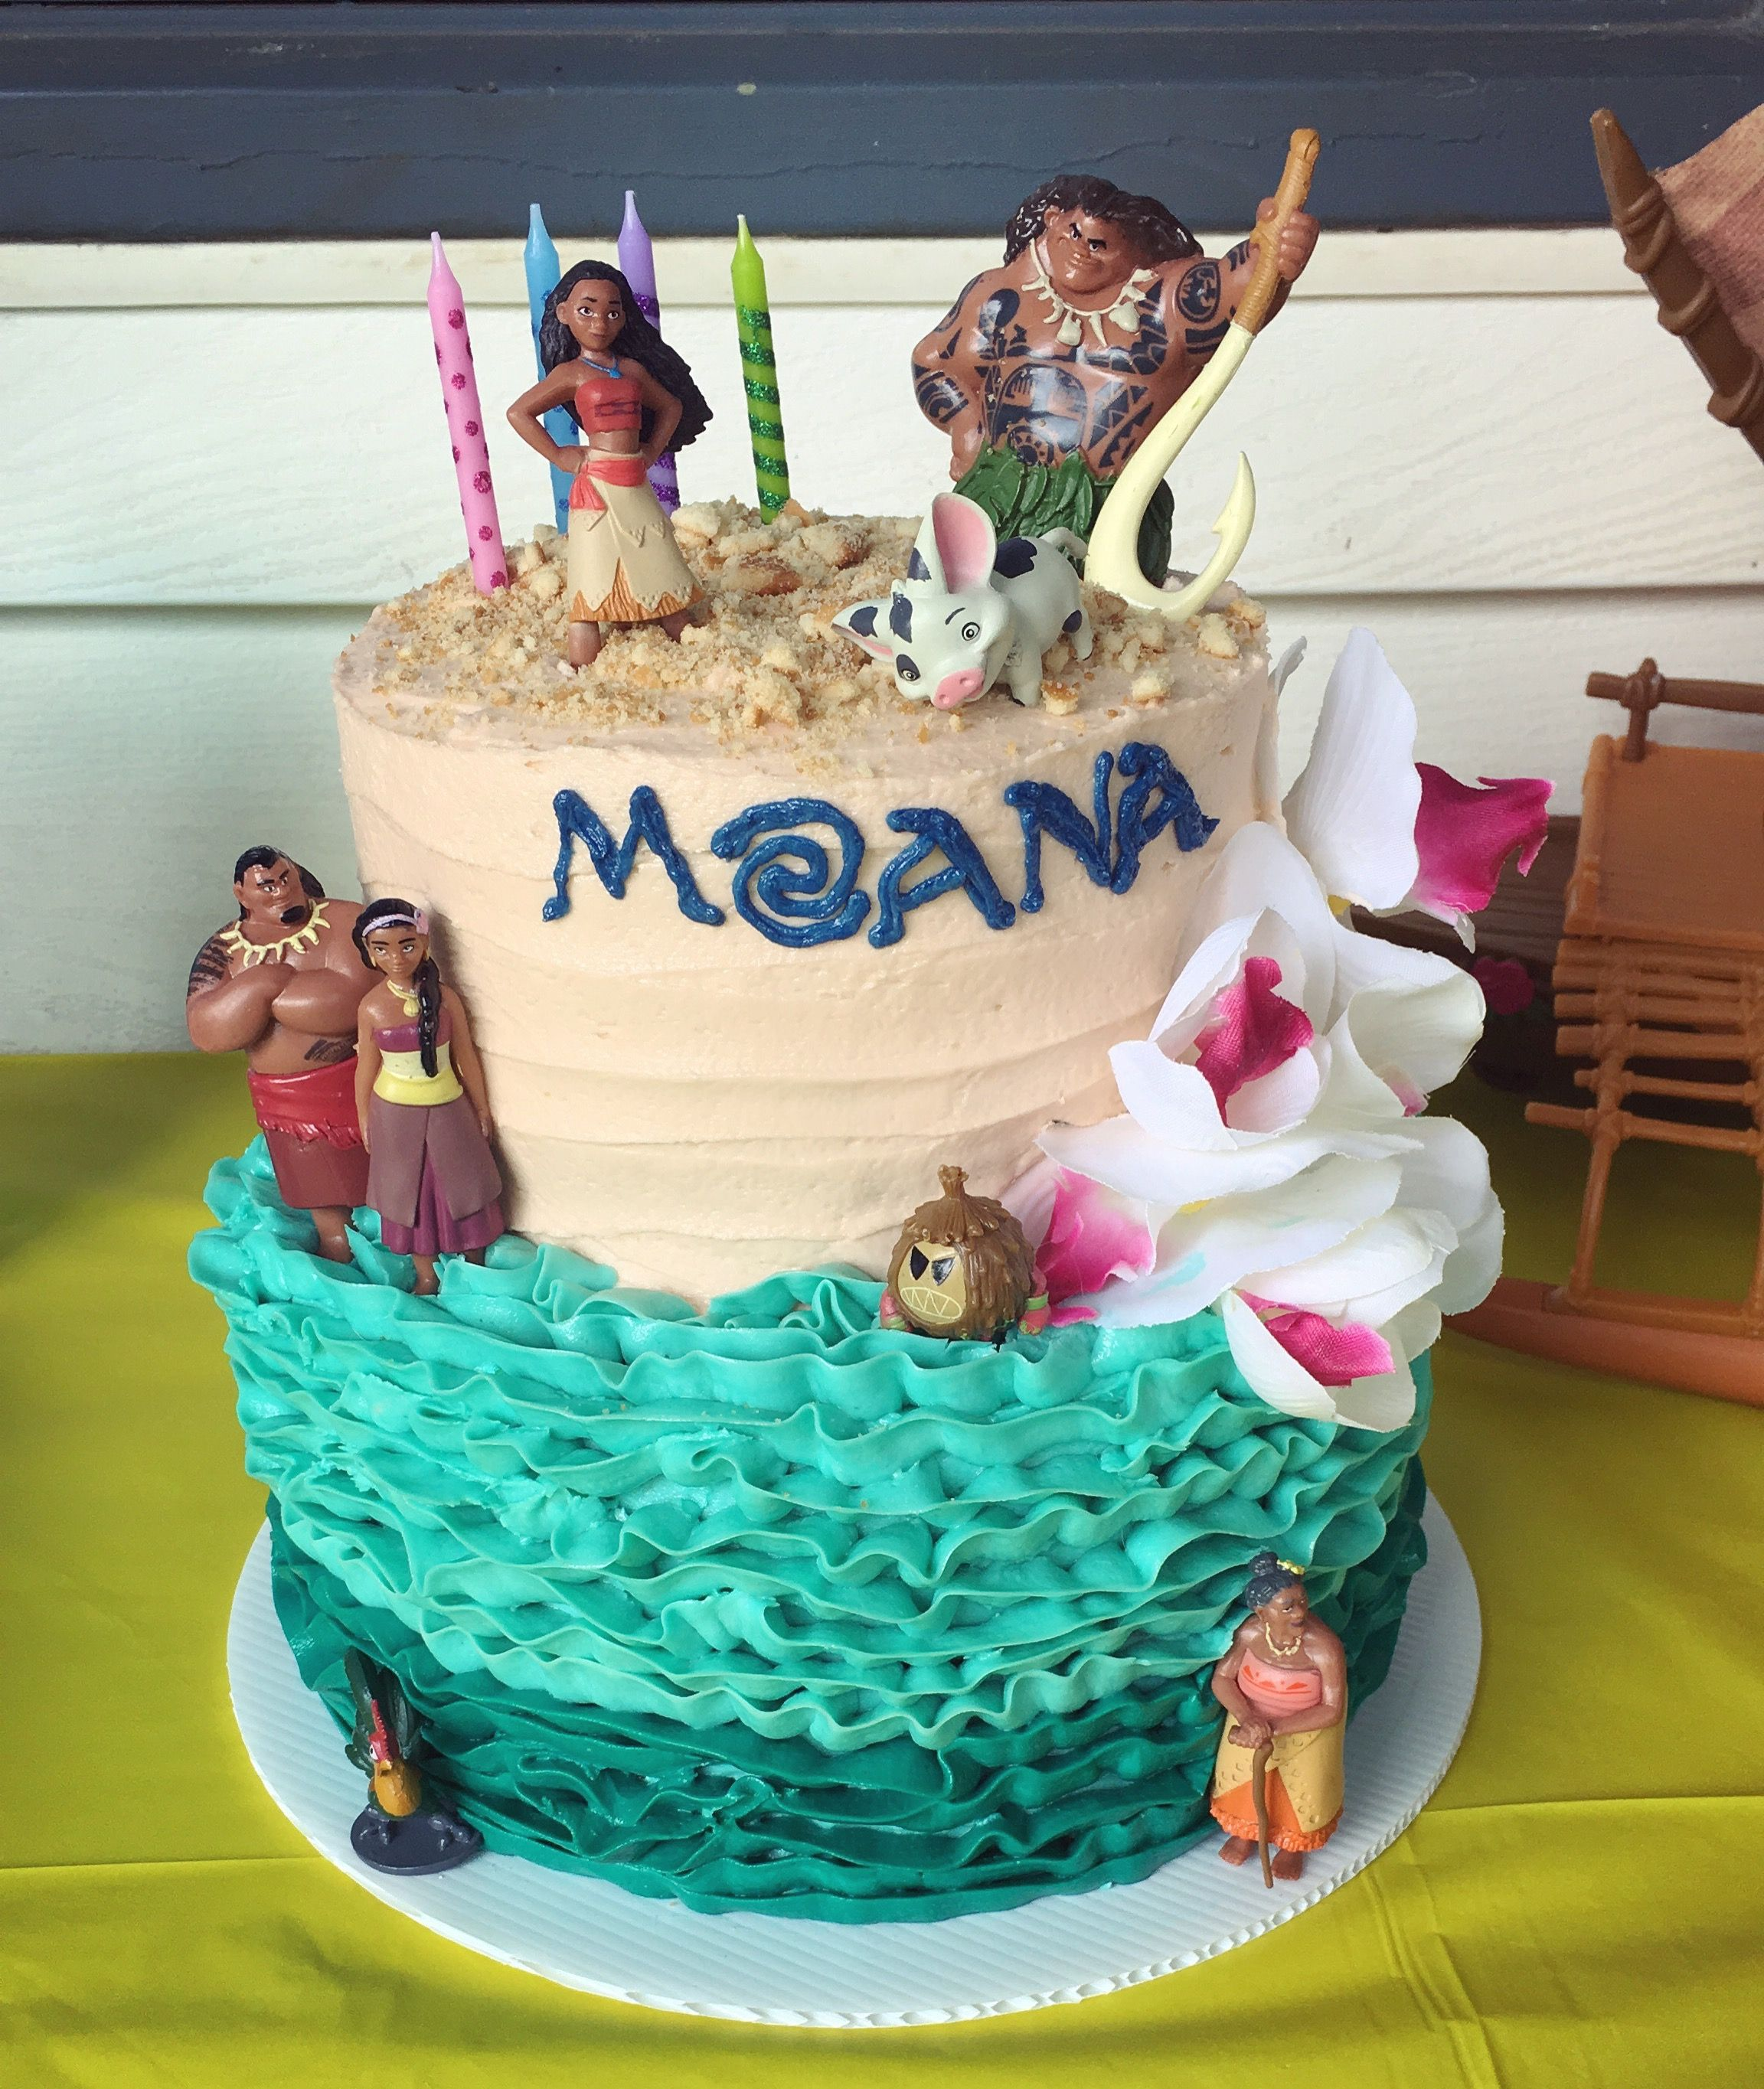 Moana birthday cake Birthdays Pinterest Moana birthday